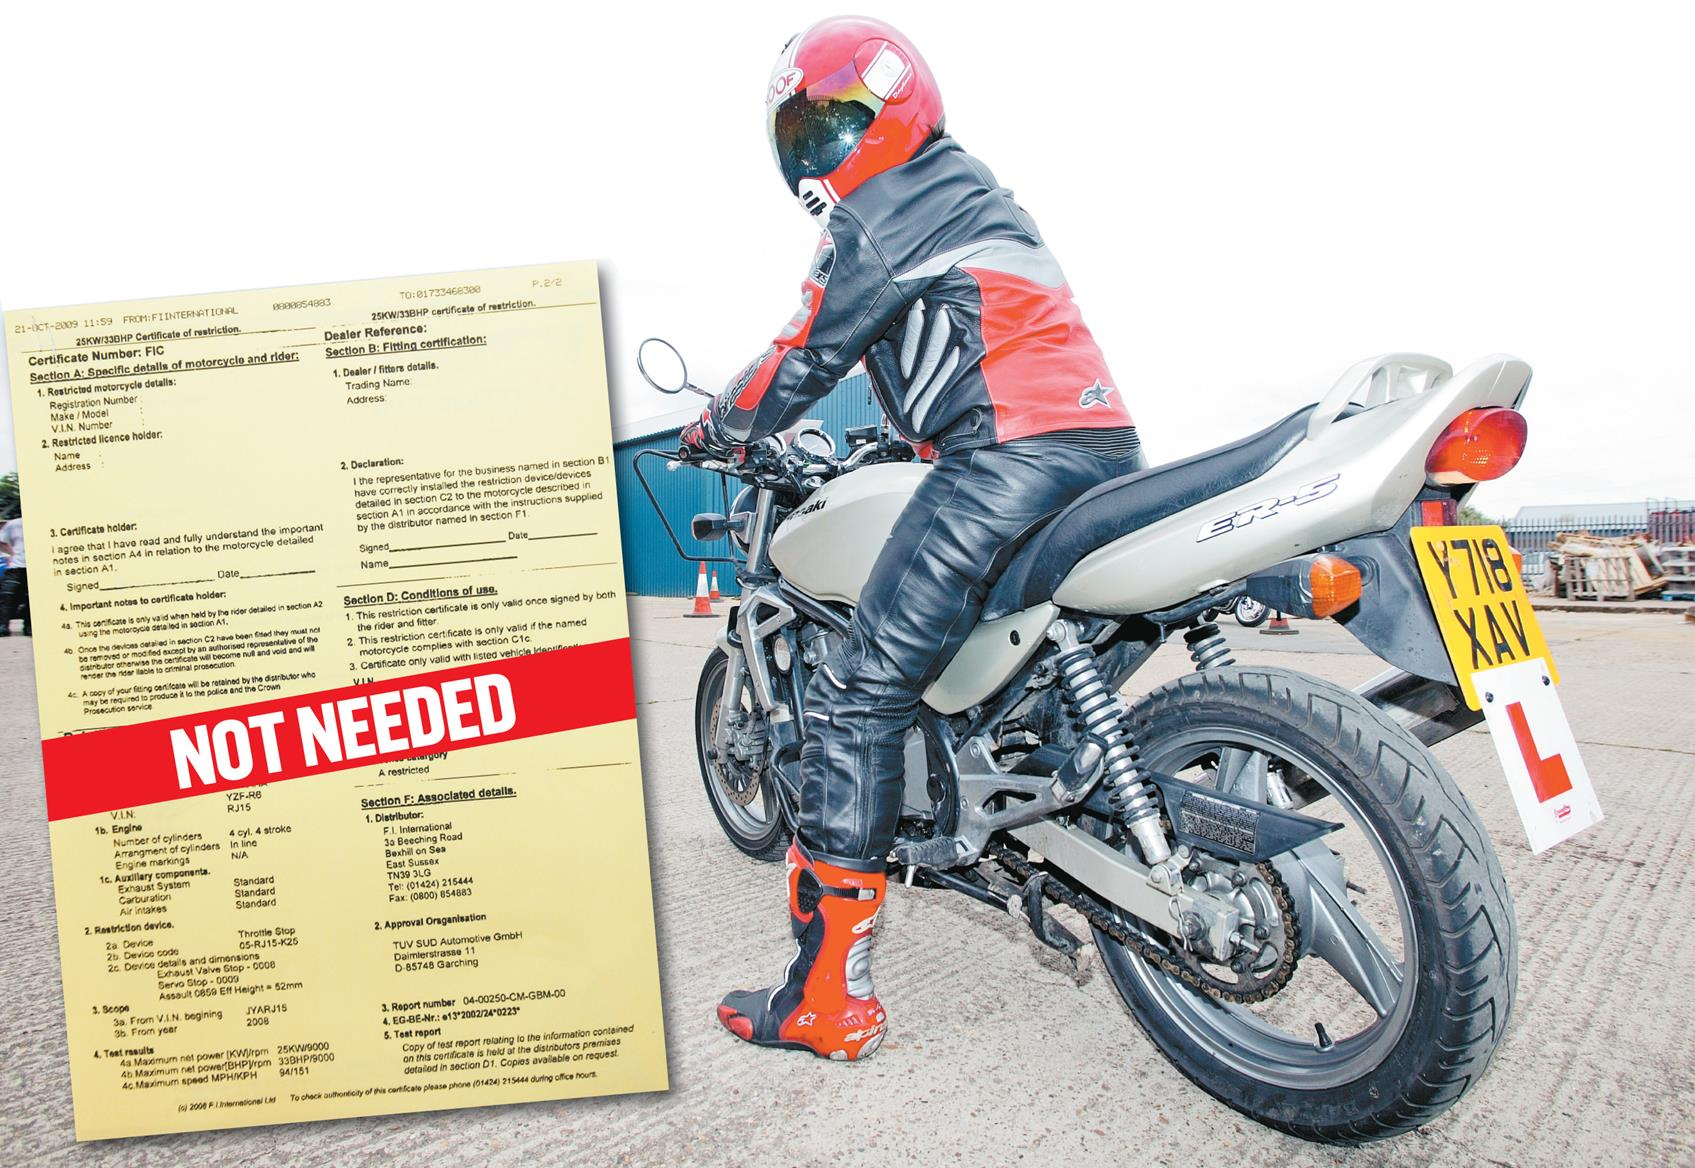 The 33bhp certificate rip off mcn 33bhp certificate rip off 1betcityfo Gallery